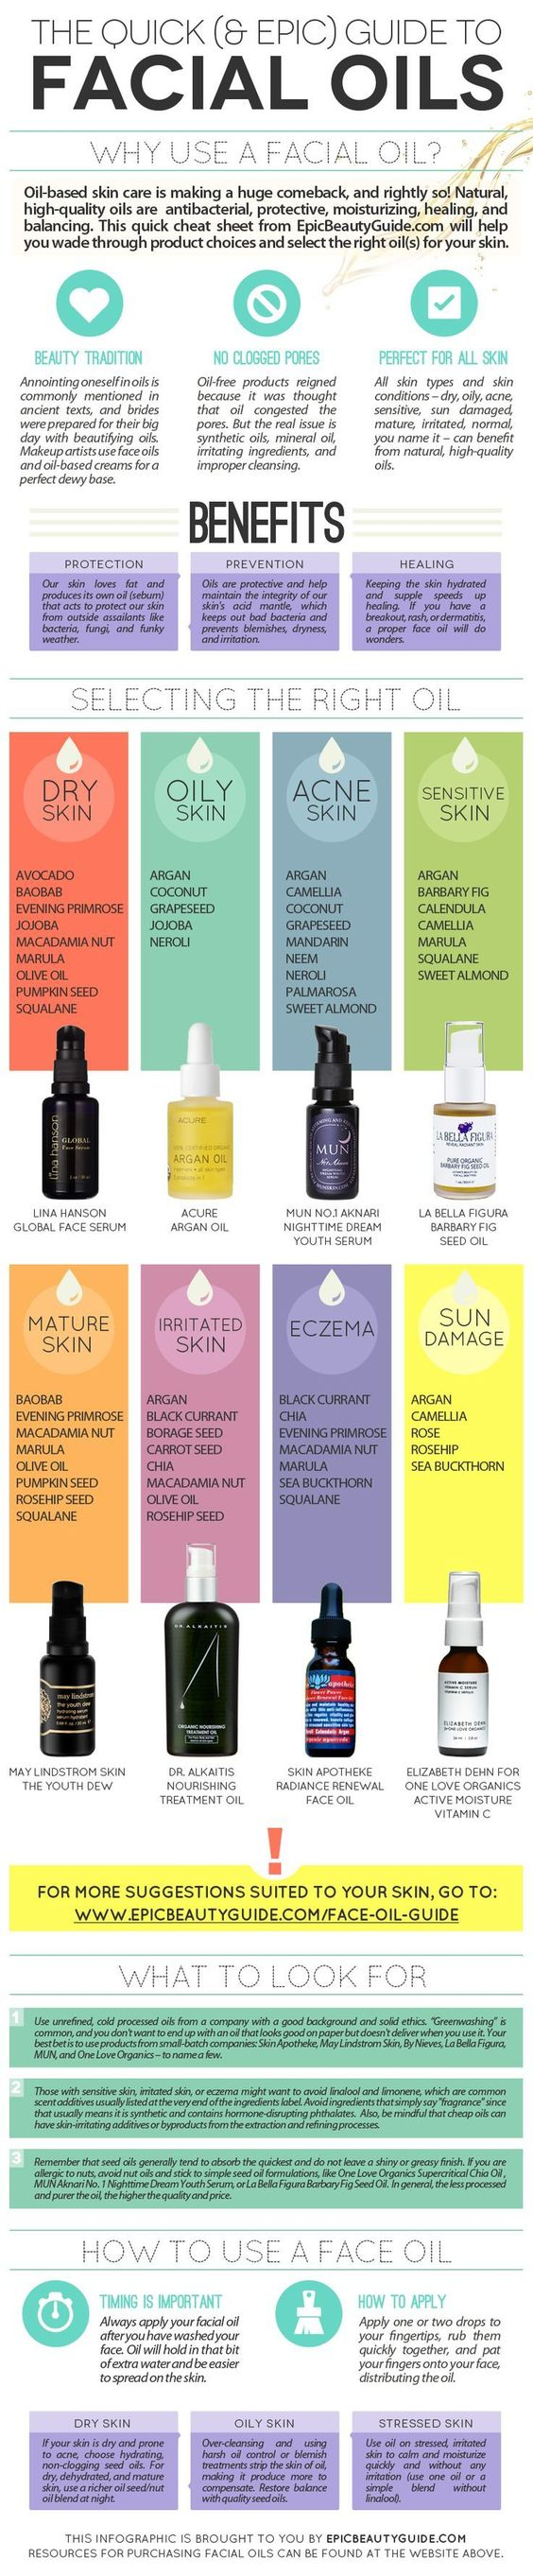 Caring for Your Facial Skin During a Busy Day